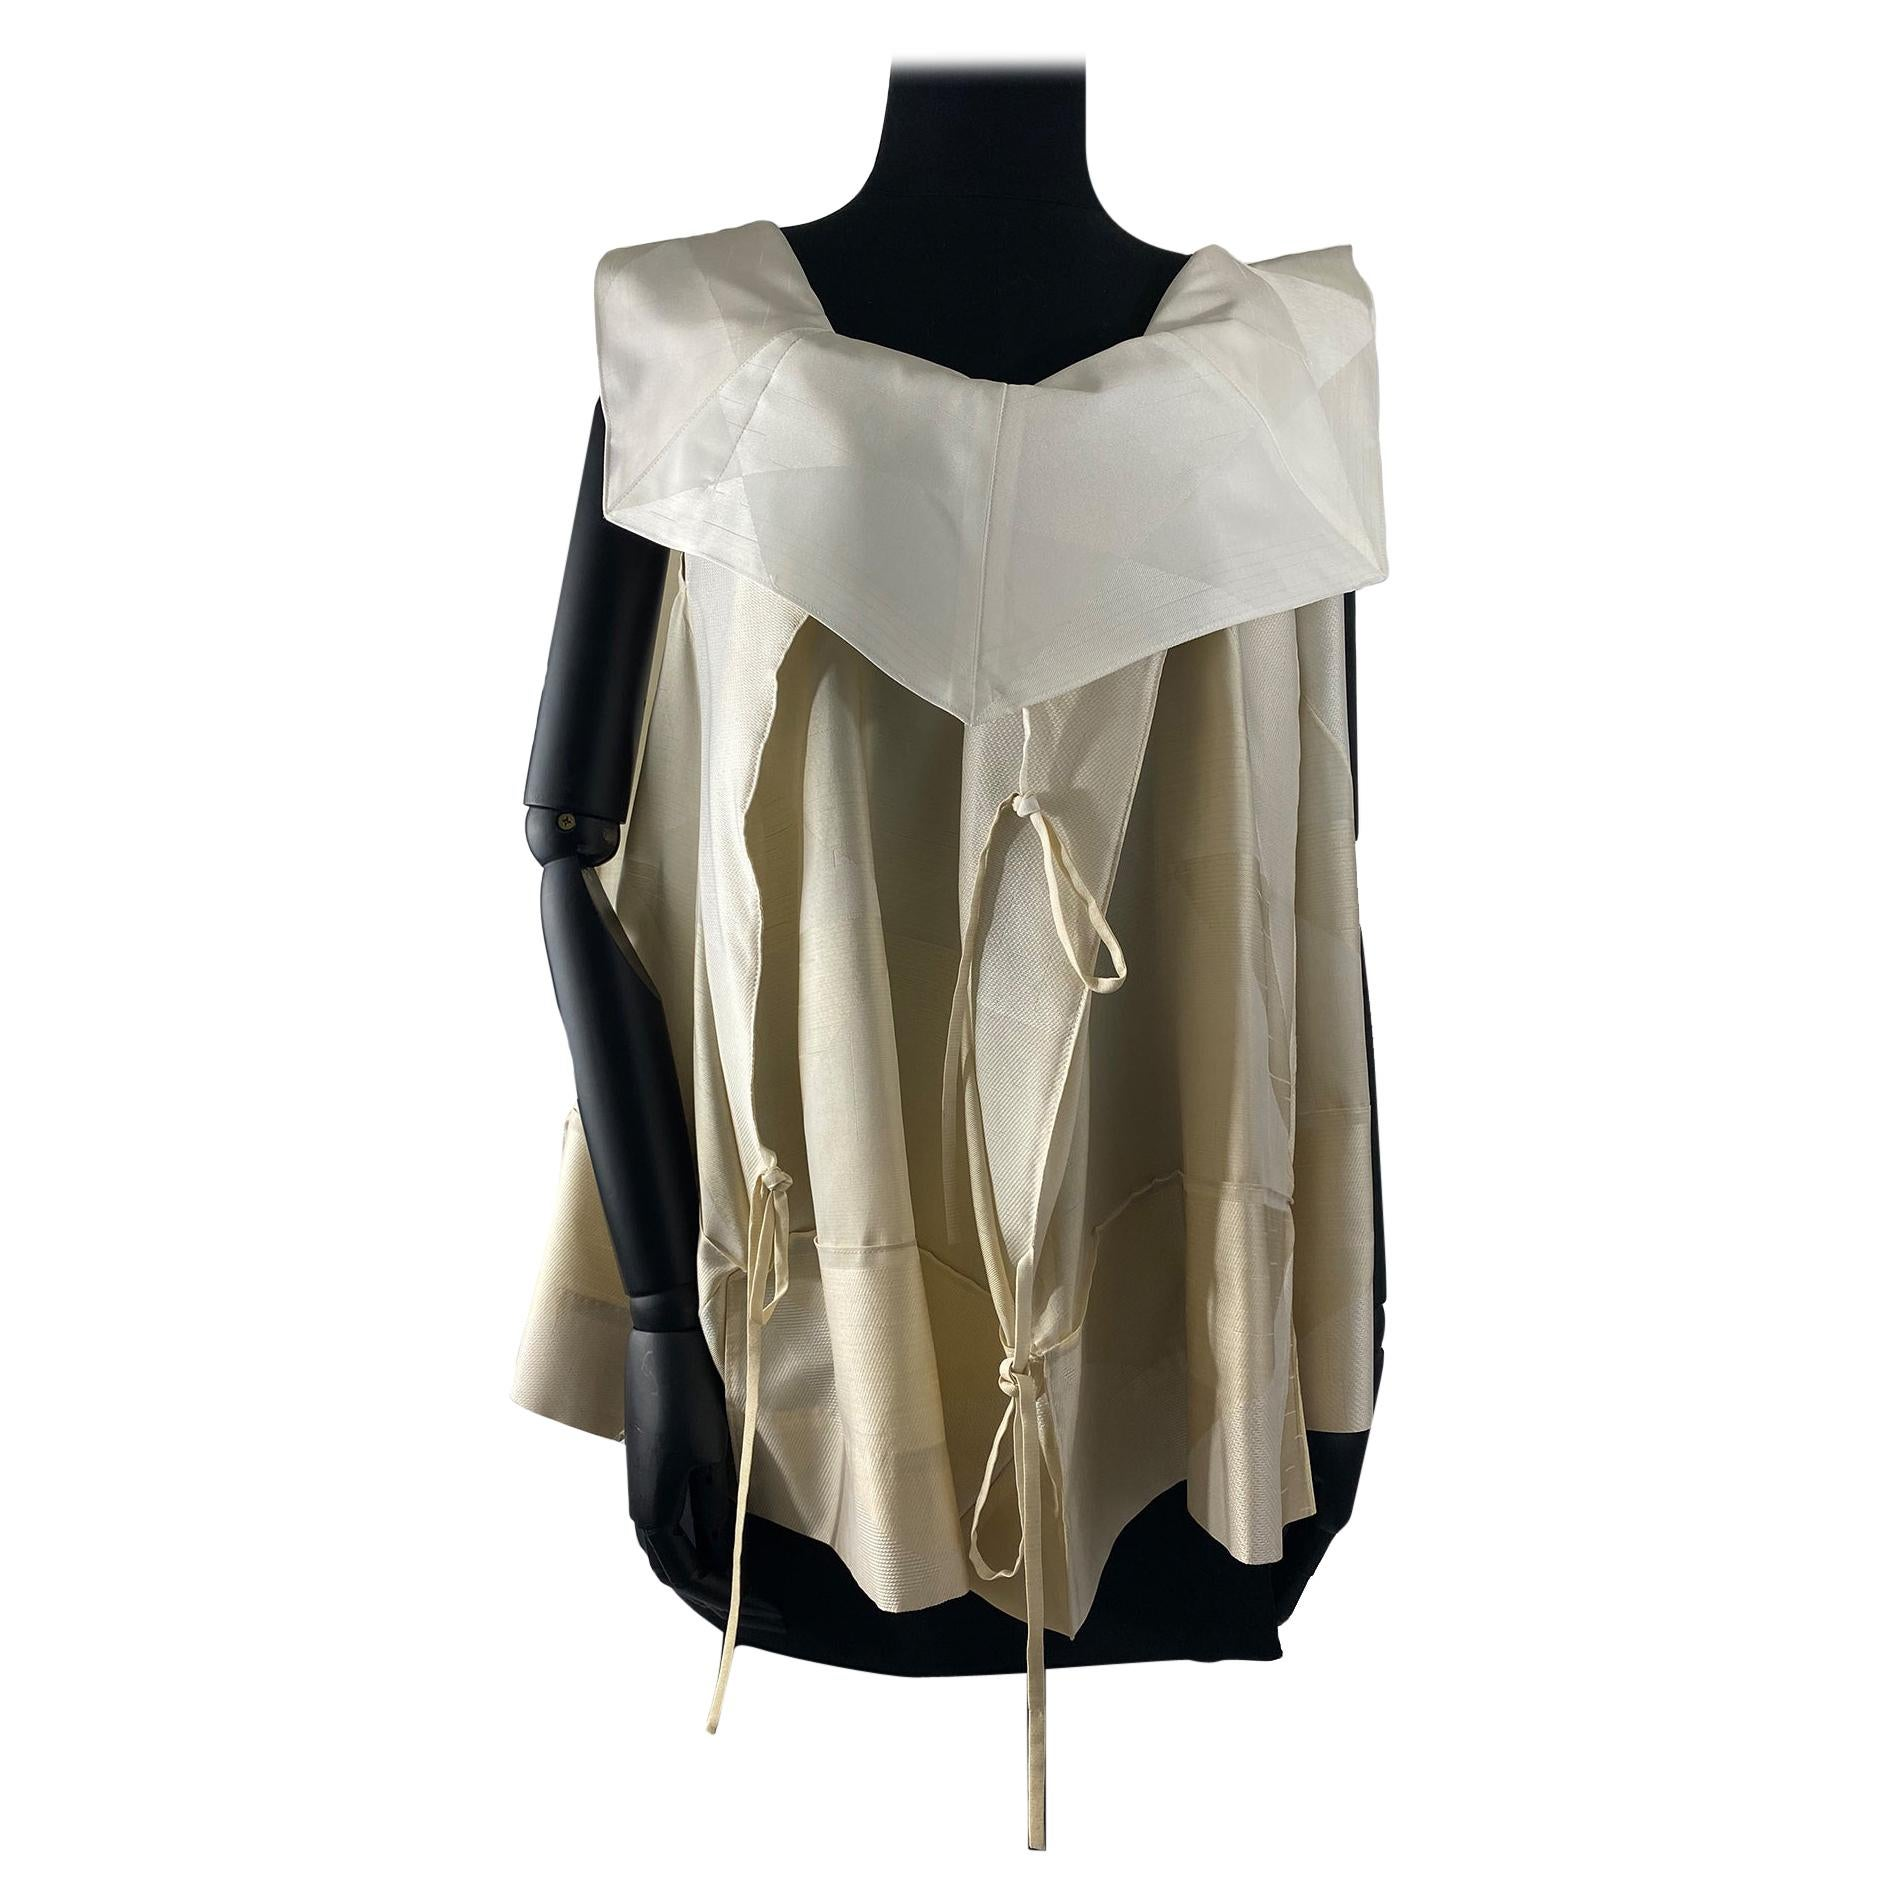 1990's Issey Miyake Oatmeal, Cream And Off-White Silk Mixture Top